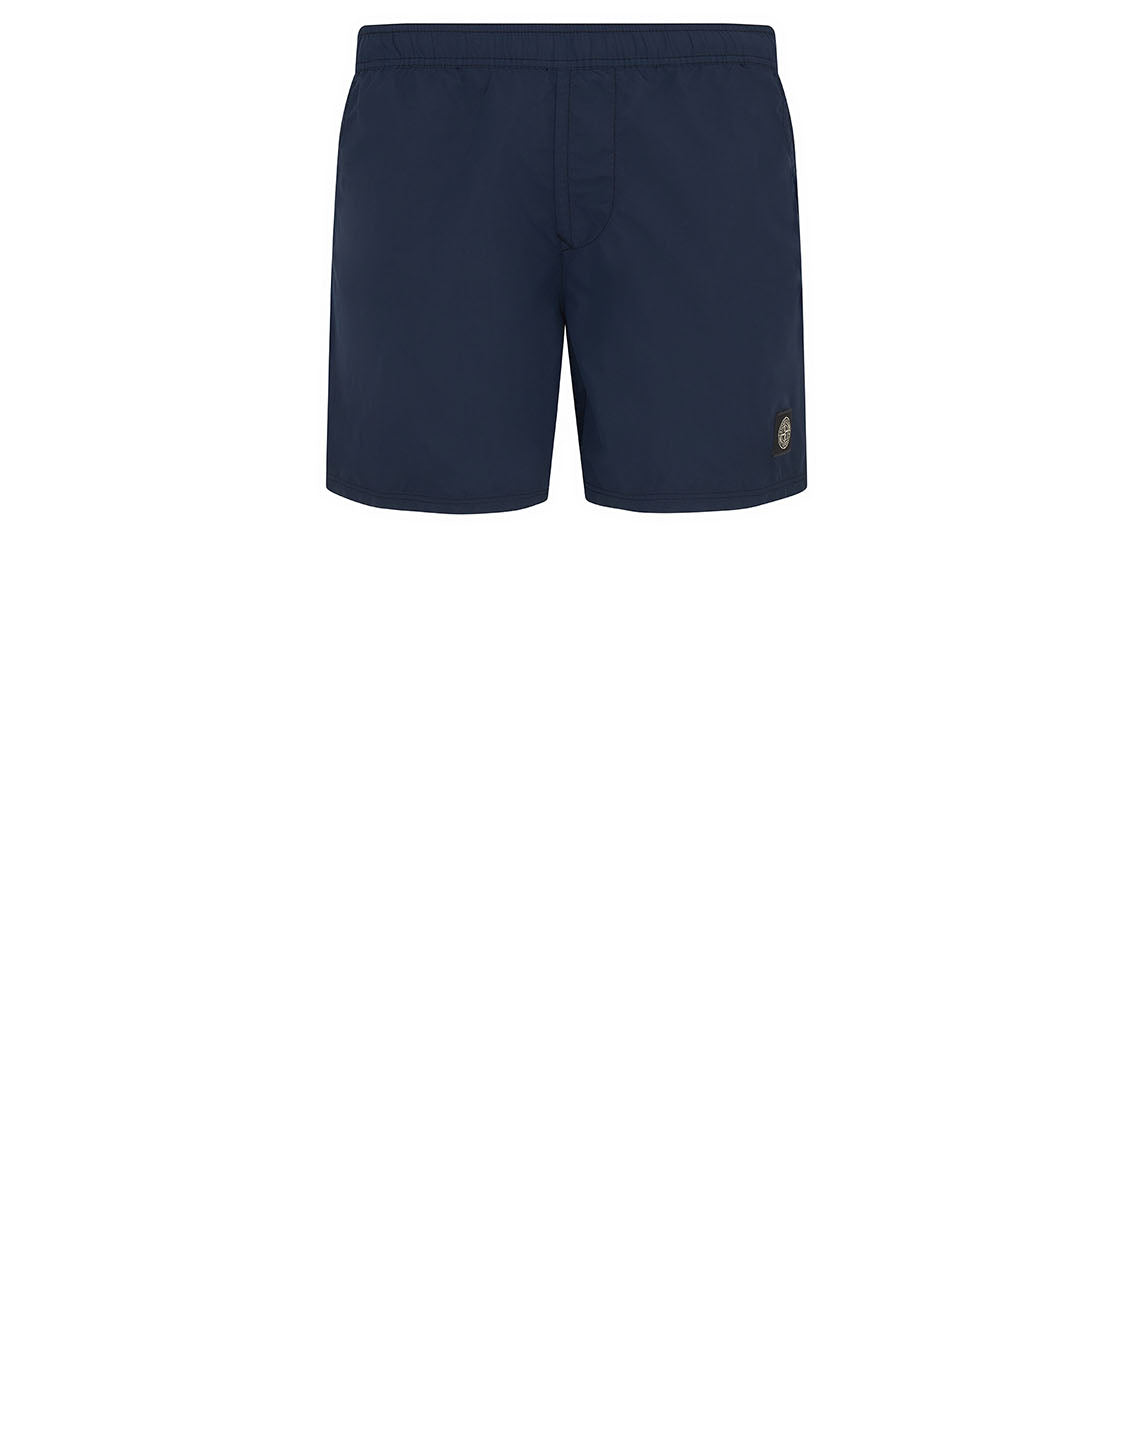 B0946 Swimming Shorts in Navy Blue